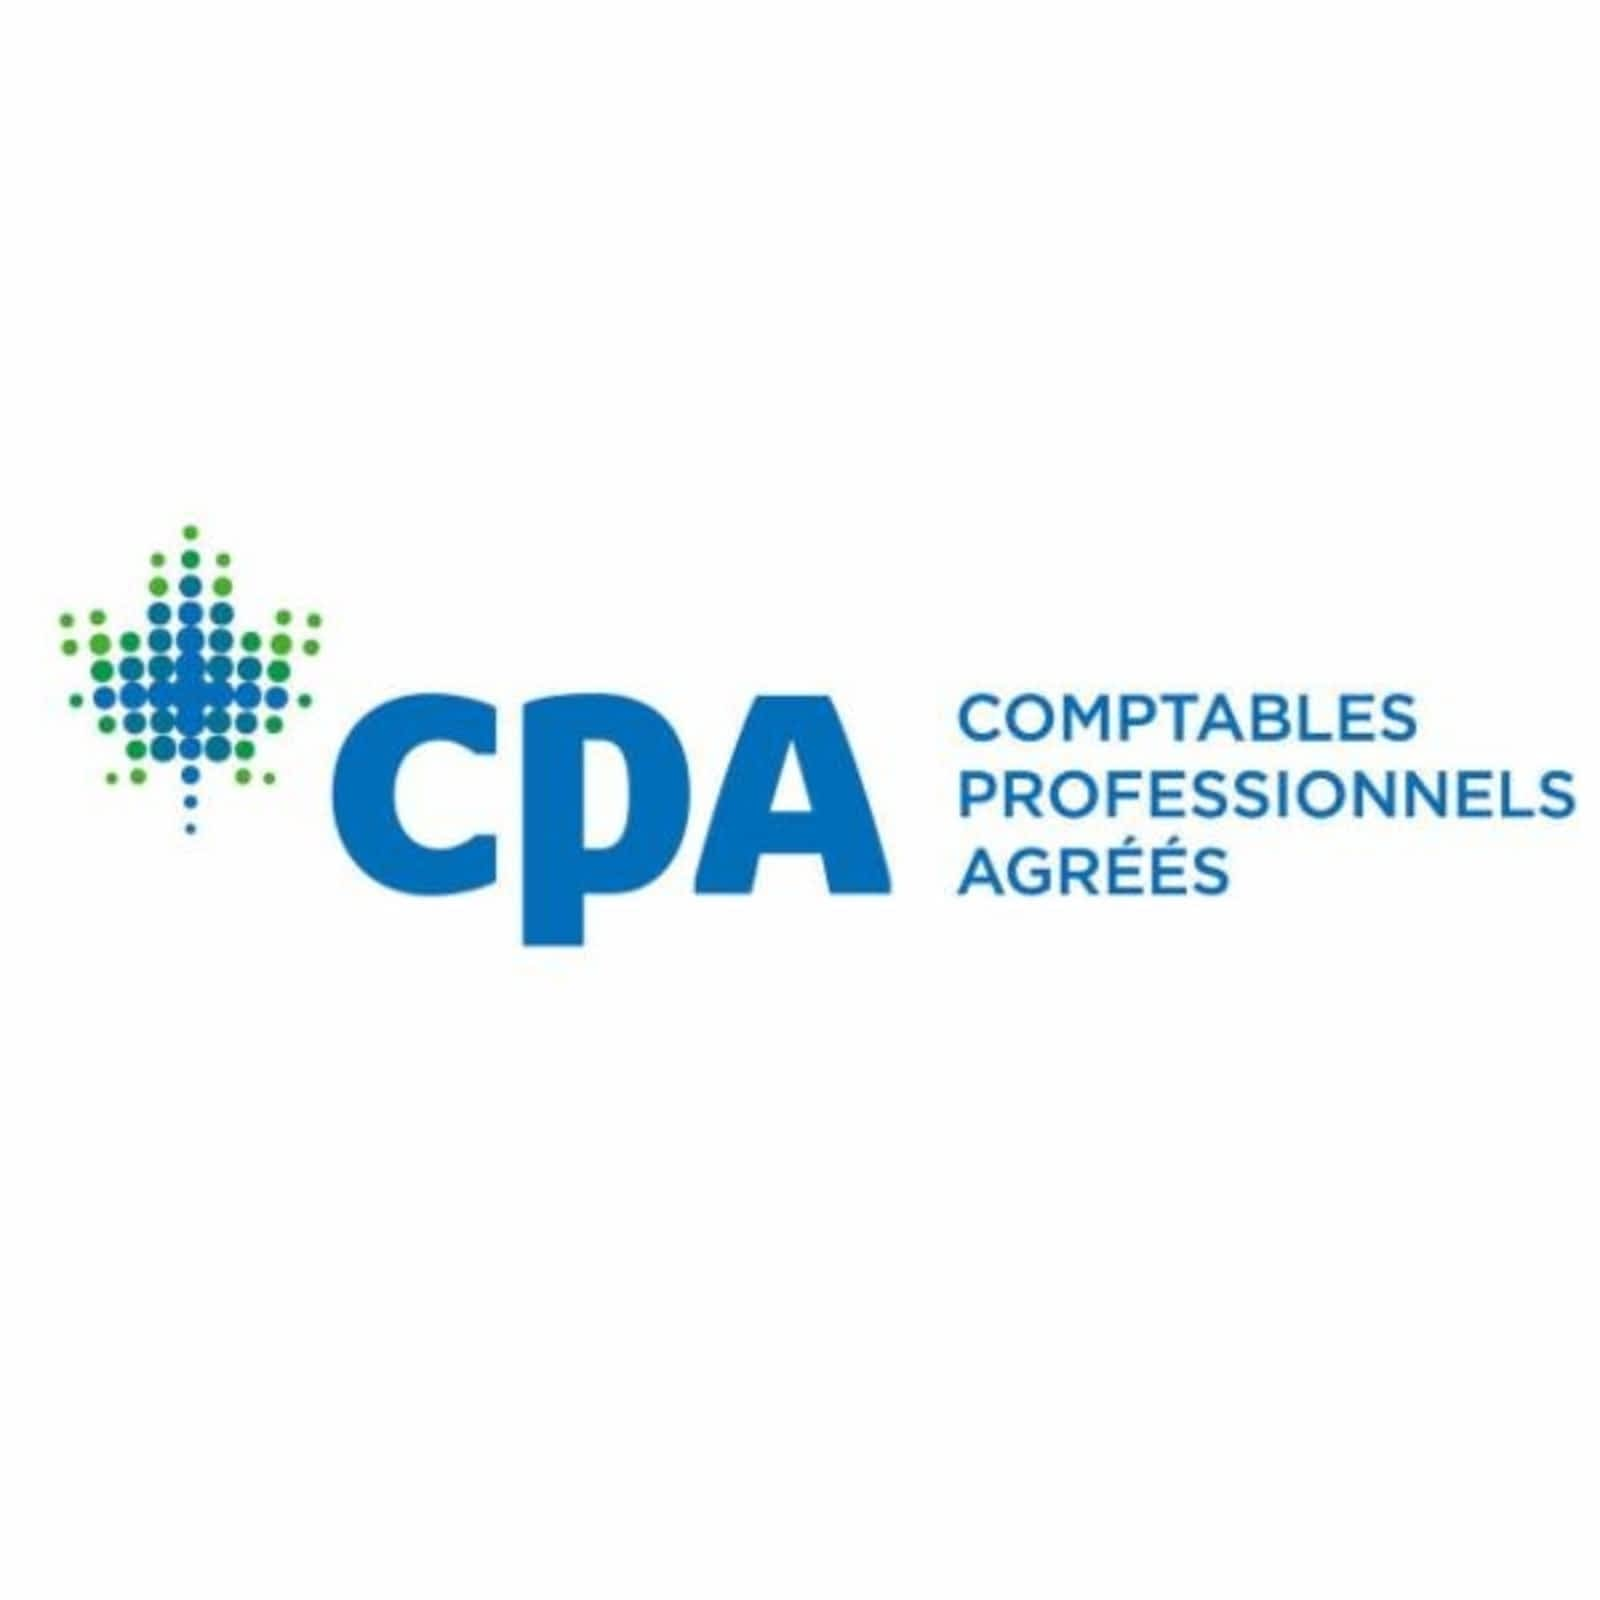 Cabinet Comptable Chantal Famelart Cpa Opening Hours 1076